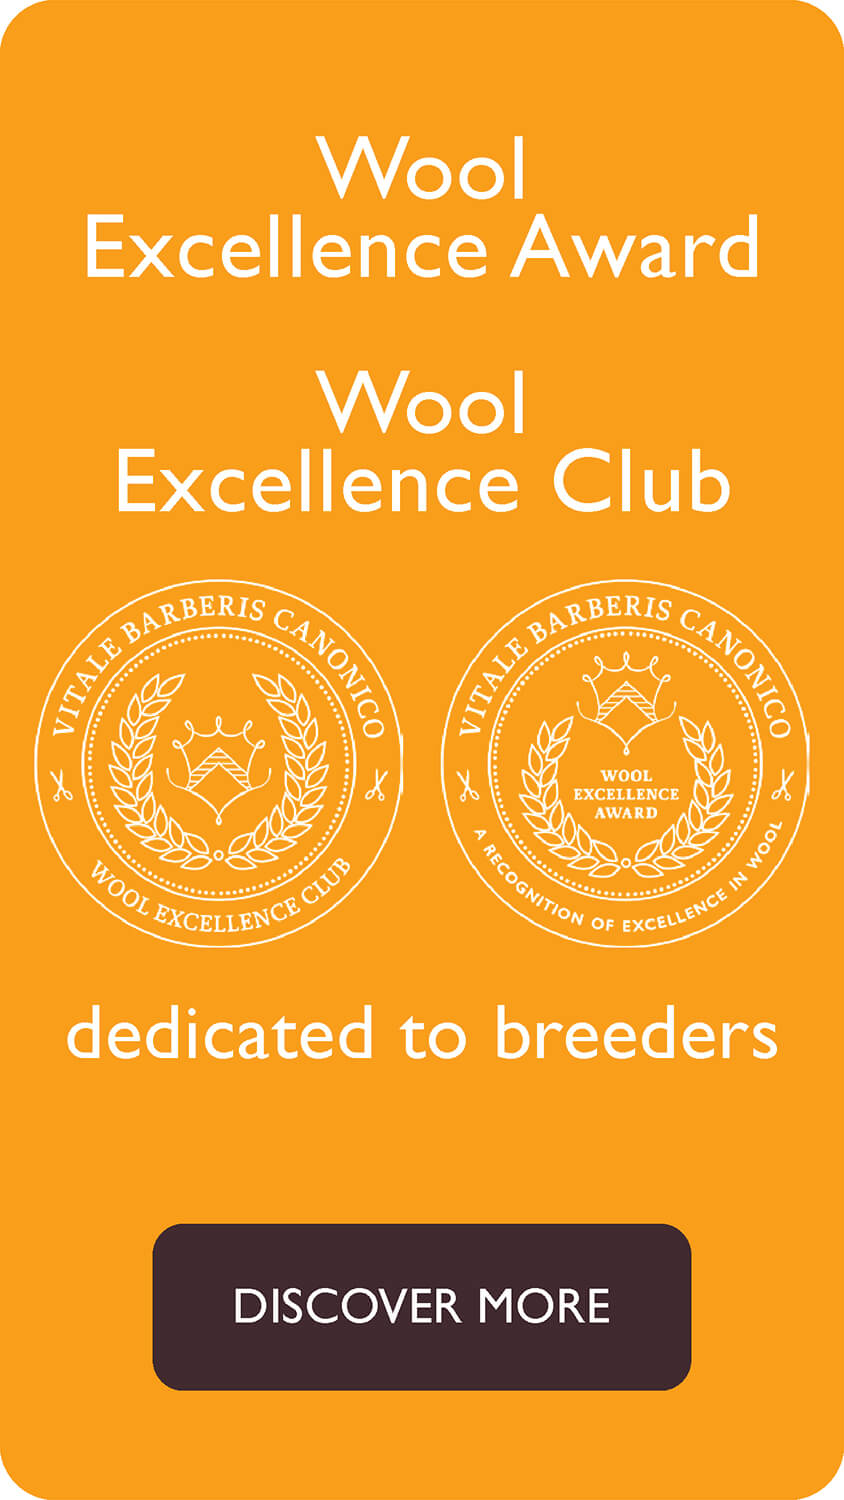 Wool Excellence Award, Wool Excellence Club dedicated to breeders